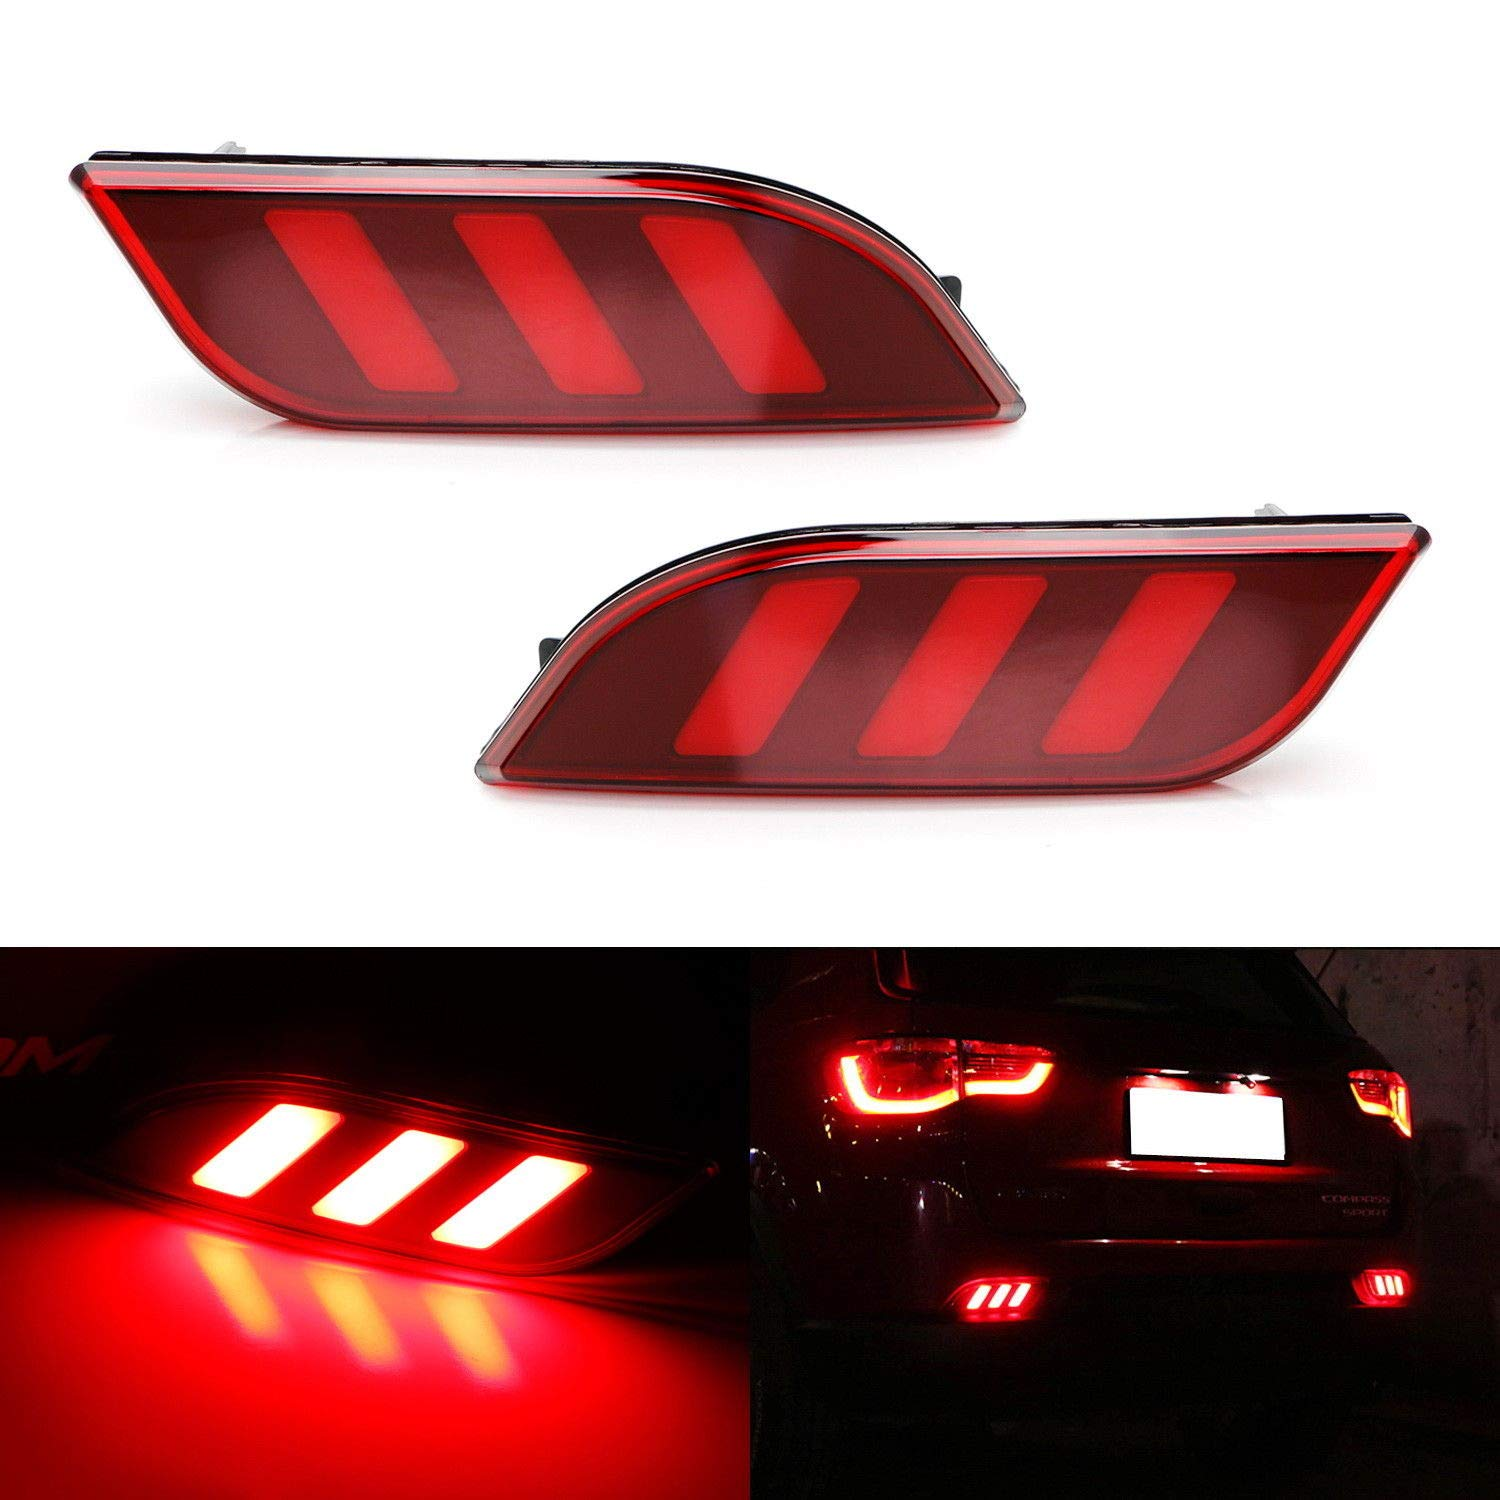 iJDMTOY Optic Tube Style LED Bumper Reflector Lights For 17-up Jeep Compass, Function as Tail, Brake & Rear Fog Lamps